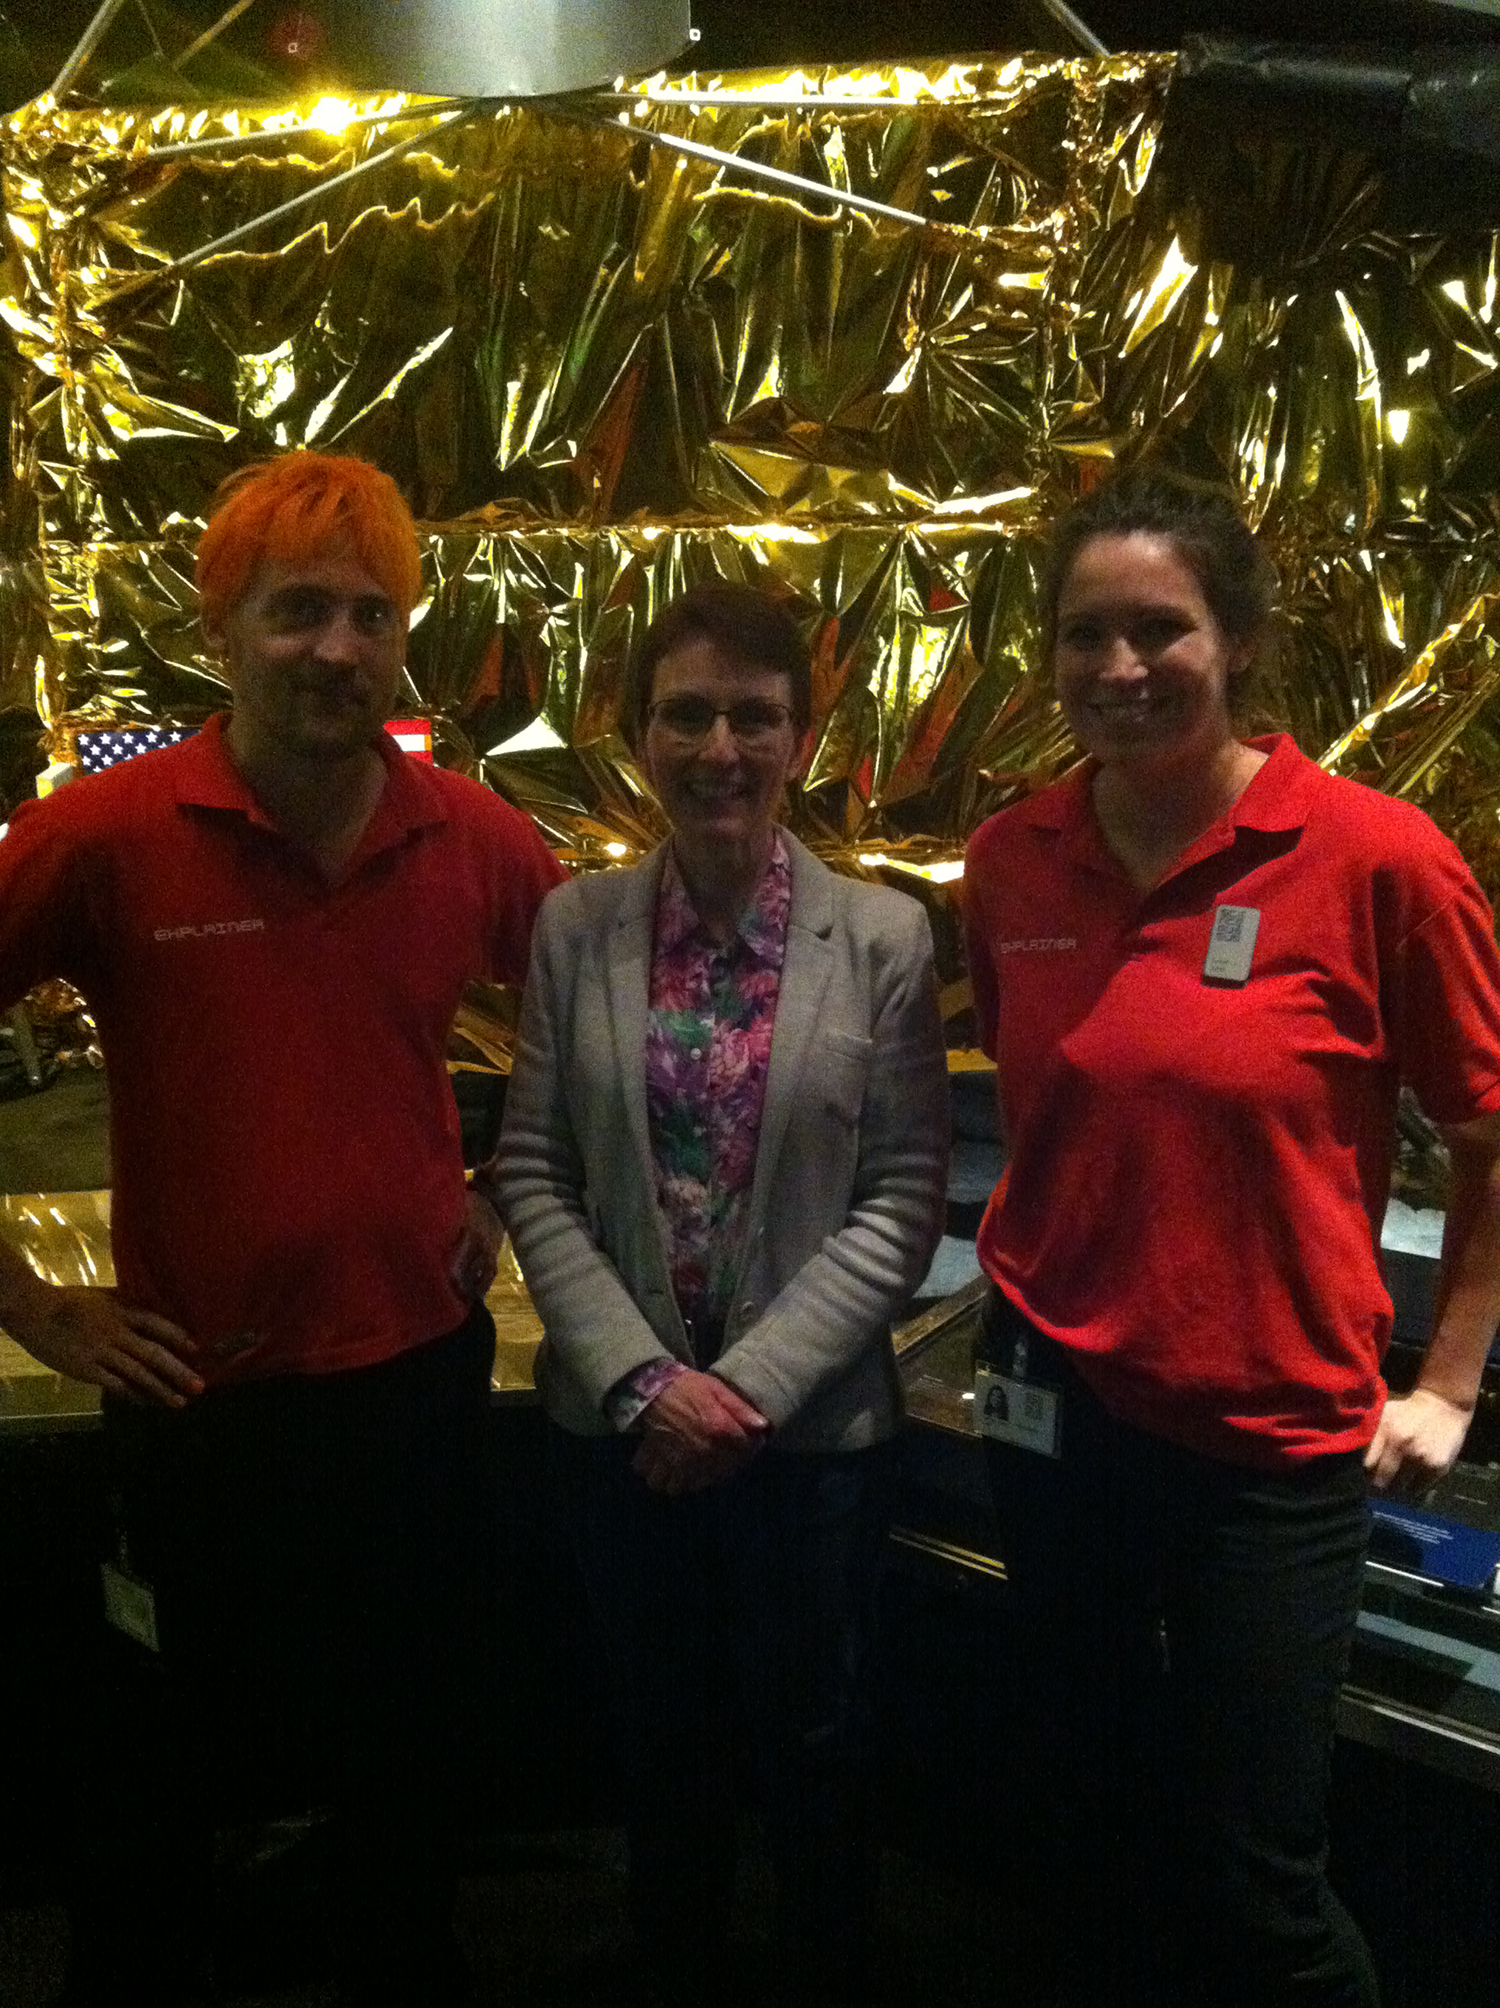 David and colleague Sarah-Jane, meeting Britain's first Astronaut Helen Sharman during Tim Peake's landing on the 19th June.